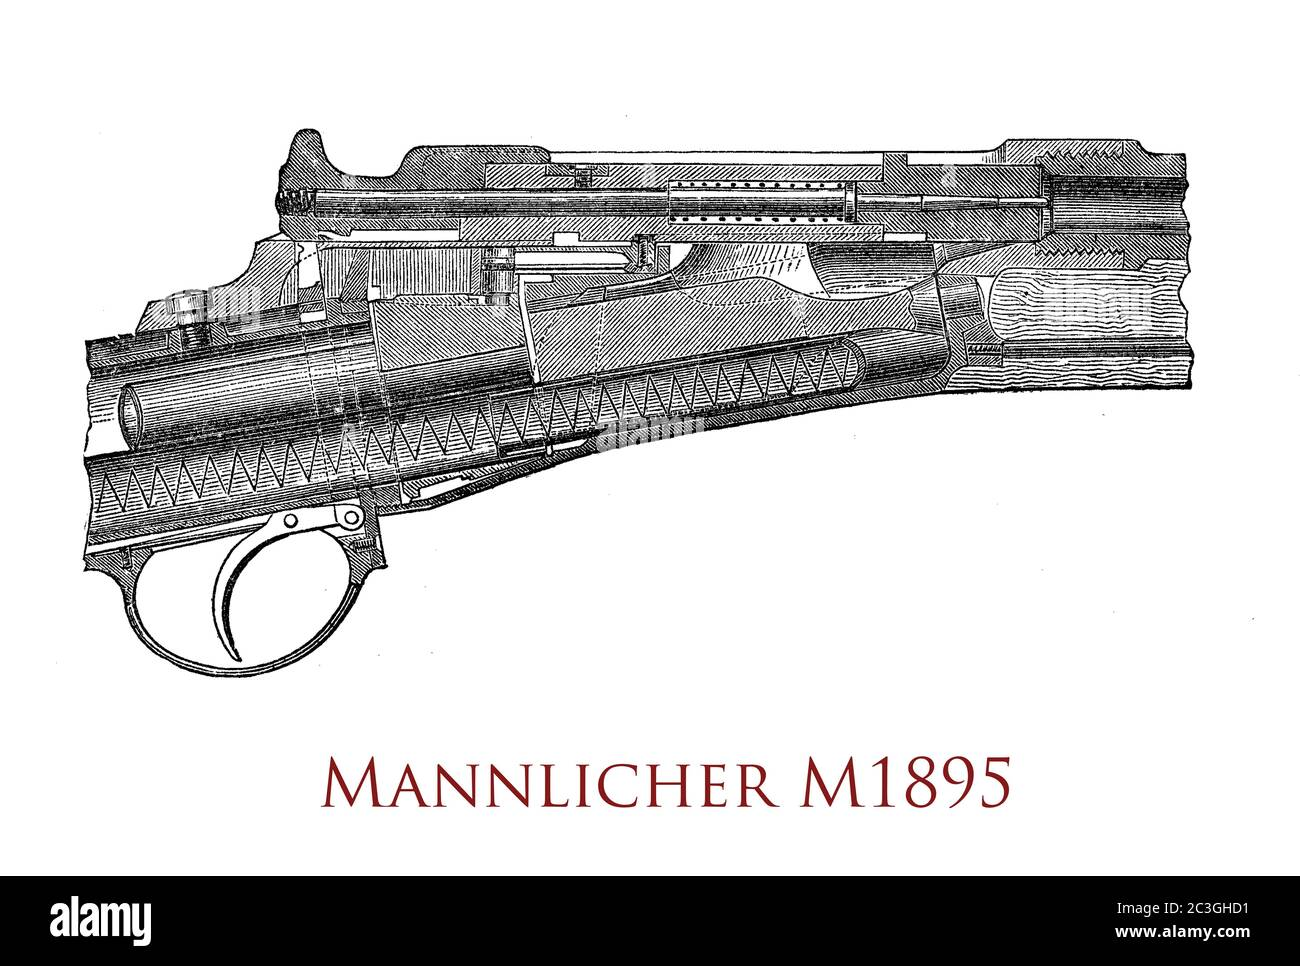 Mannlicher M1895 Infantry Repeating-Rifle straight pull bolt-action rifle designed by Ferdinand Ritter von Mannlicher and used by Austro-Hungarian Army in World War I Stock Photo